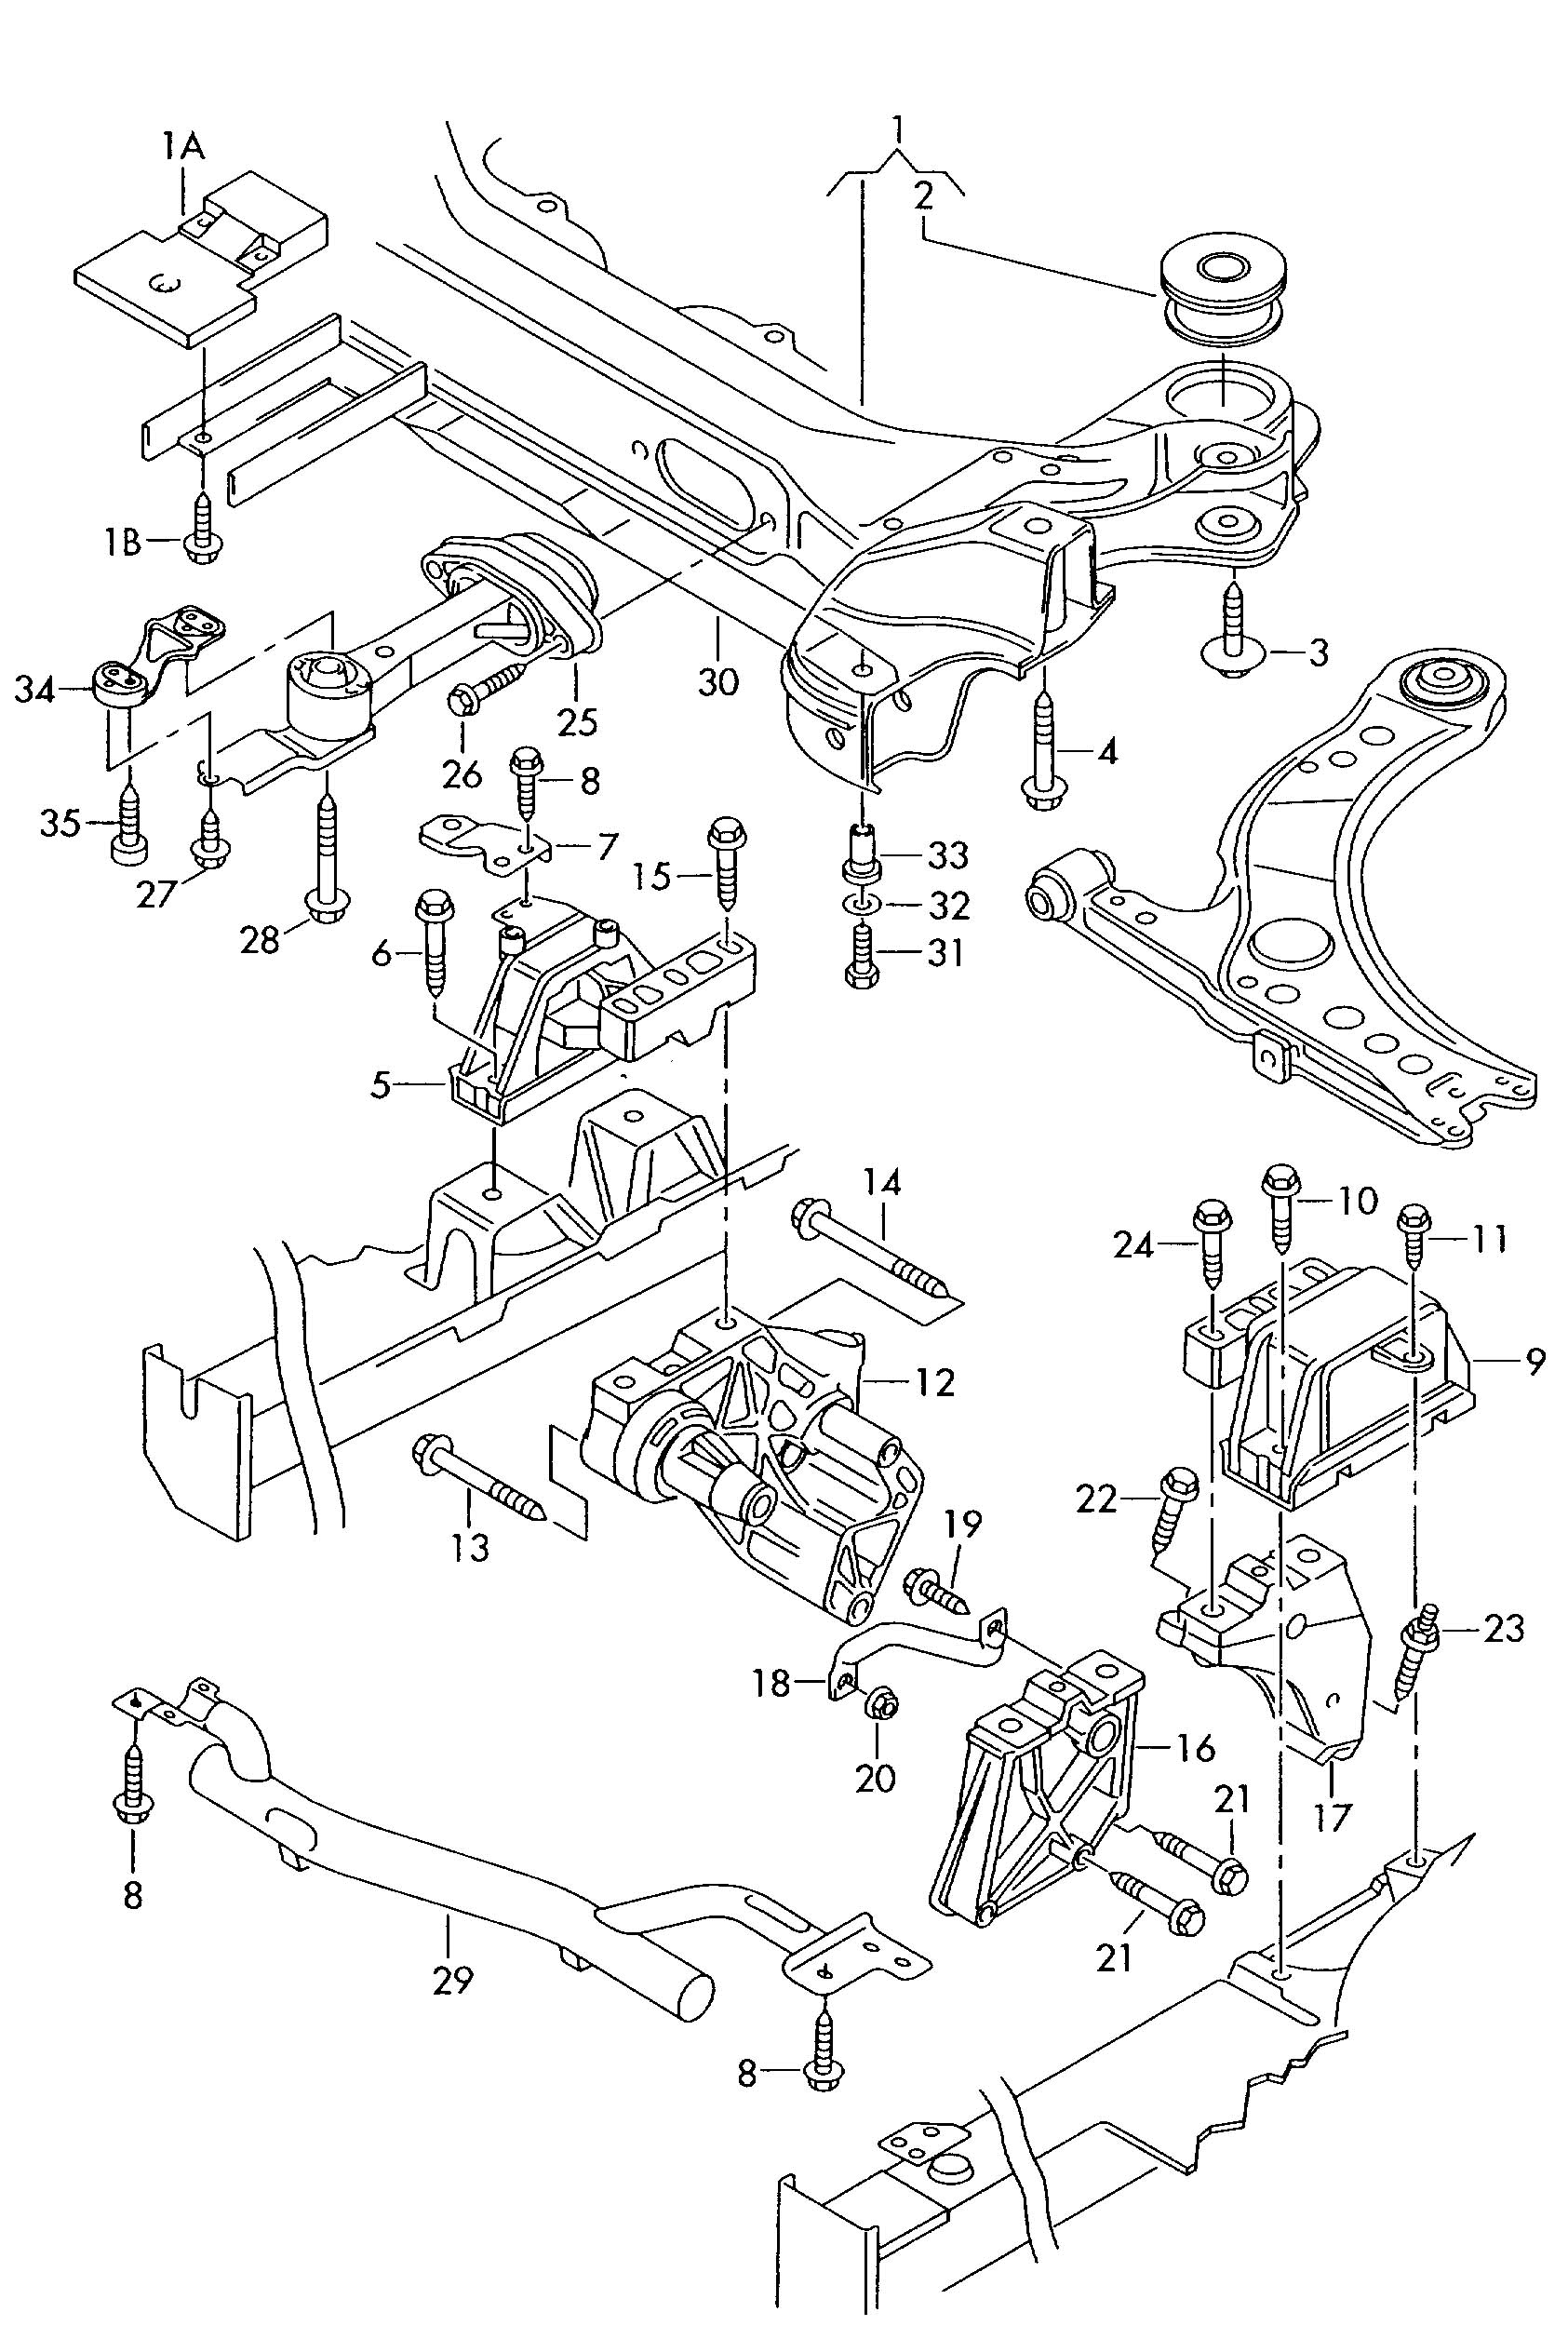 Vw Bug Engine Parts Diagram Everything About Wiring For Type 2 Library Rh 78 Codingcommunity De Tin 1 Weight